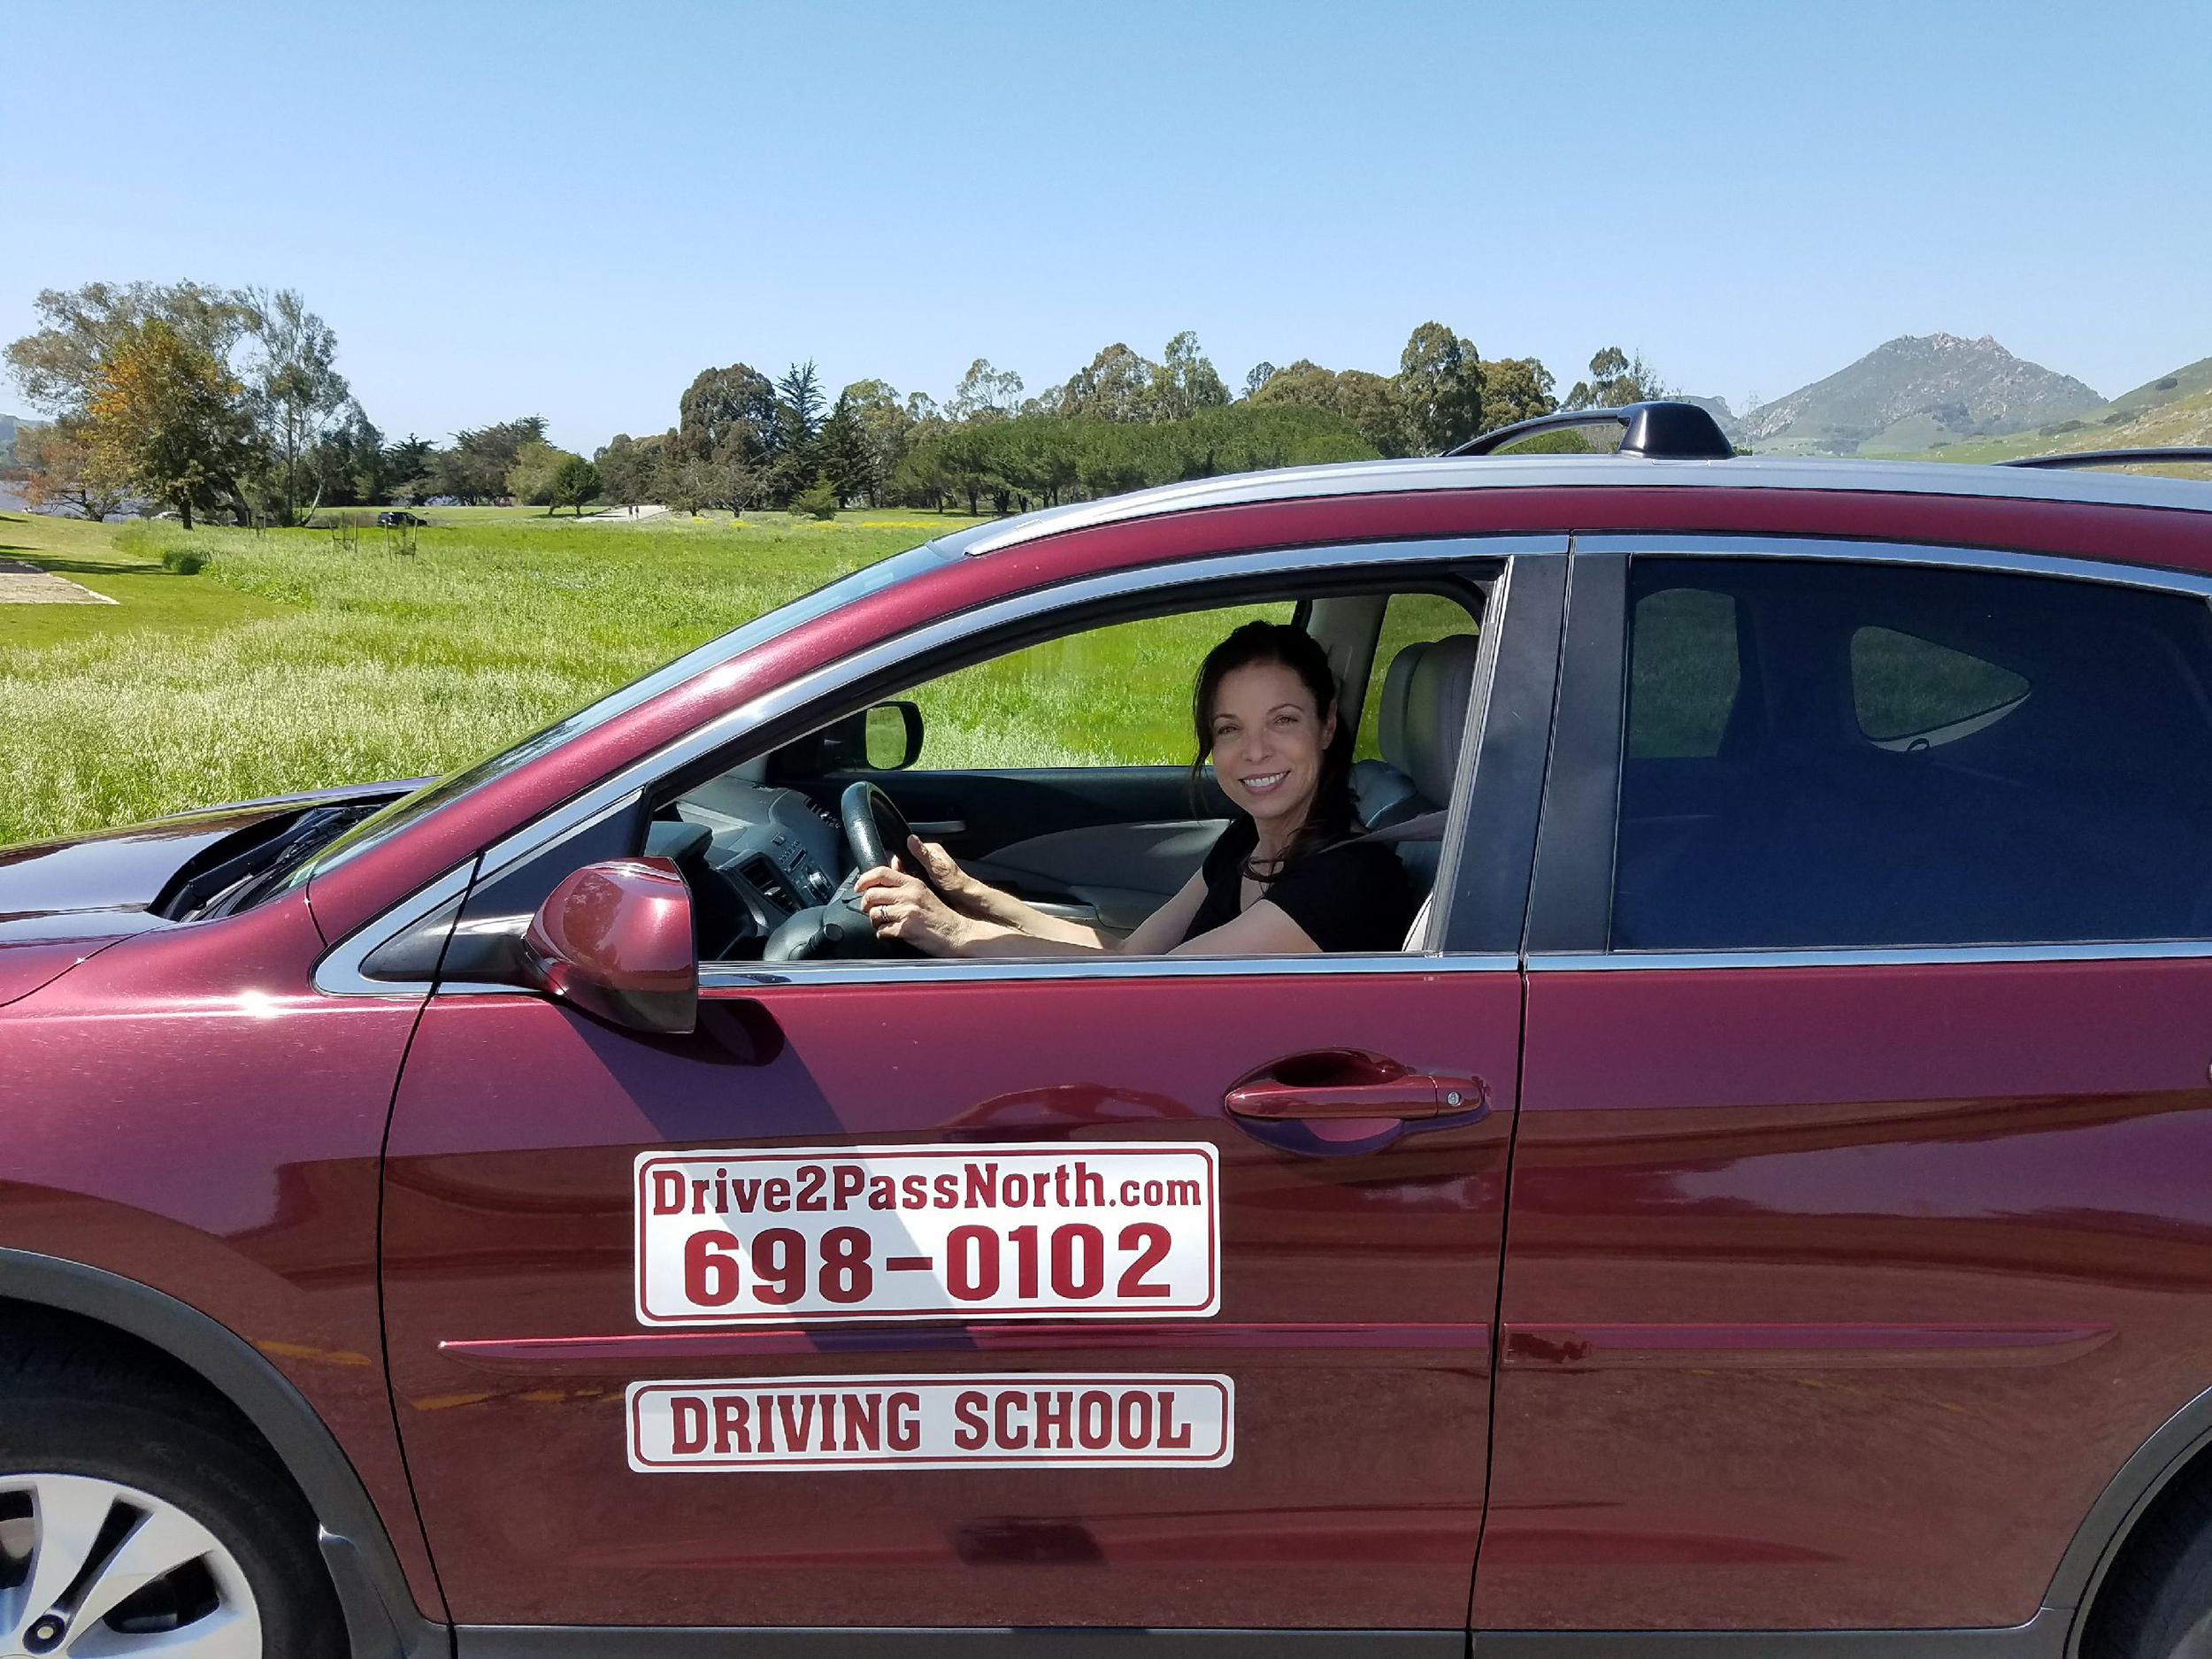 "AbouT Drive2Pass NOrth - Sonja Withey, Owner/Instructor""I'm grateful for the opportunity to thoroughly teach the skills needed for my students to be safe, responsible, and excellent defensive drivers."""